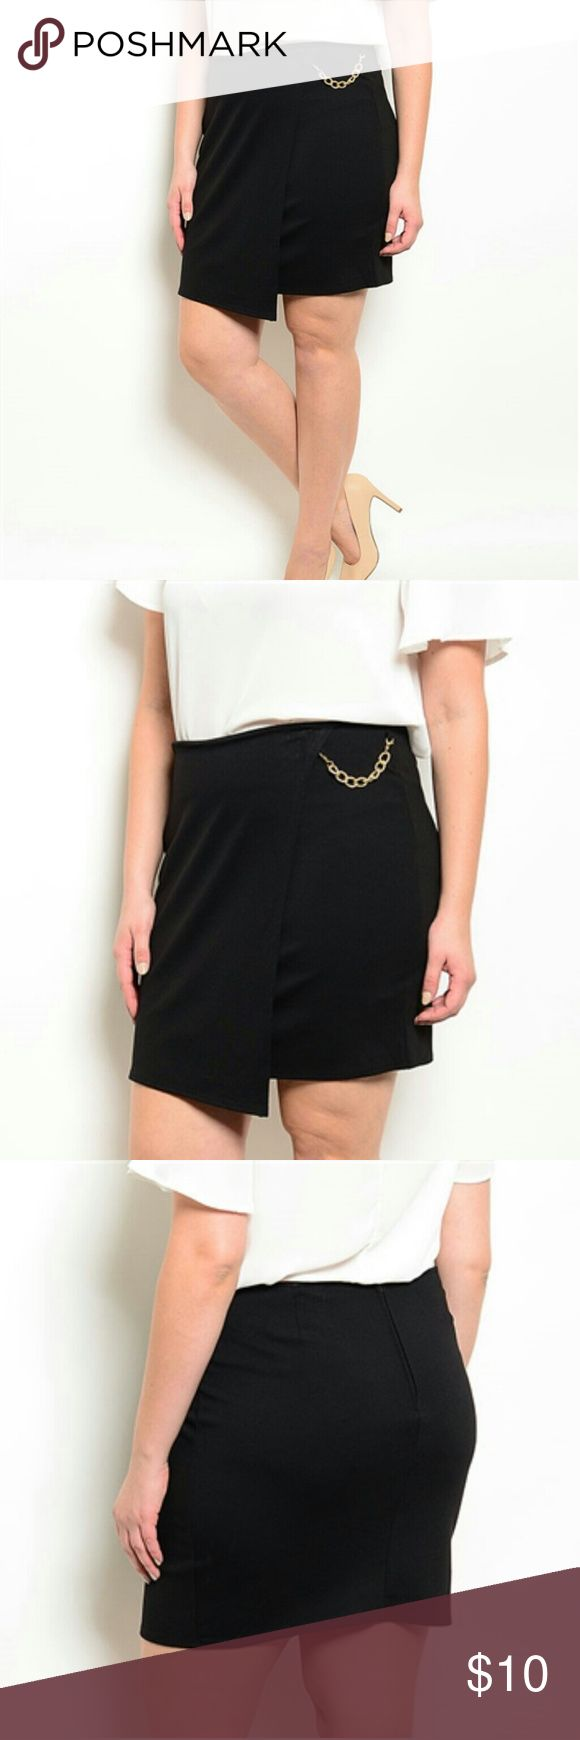 """New Plus Size Black Skirt with Chain New without tag...The chain can take off...Brand: Sky Plus...Size 1X  (waist 17"""" side to side, 18.5"""" Long) ---2X(waist 18""""side to side 19"""" long)--- 3X (waist: 19"""" side to side, 19.5"""" Long) Sky Skirts Mini"""